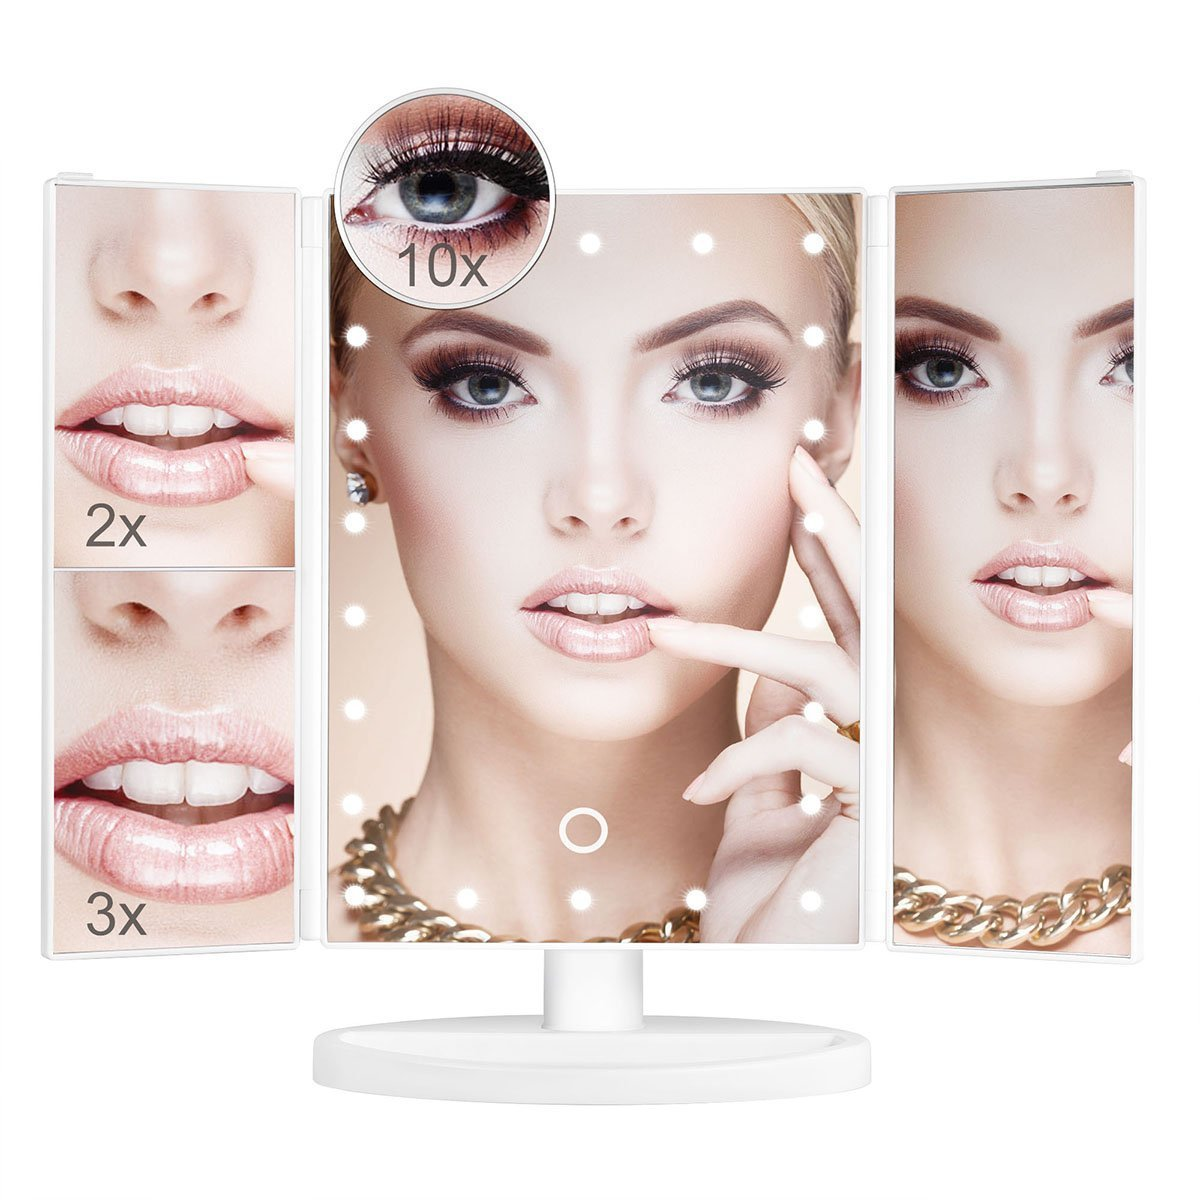 Aidonger Make-up mirror with light, make-up mirror illuminated, Make-up mirror with 22 LED lighting, 1 X 2X 3 X 10 magnifying mirror (White)